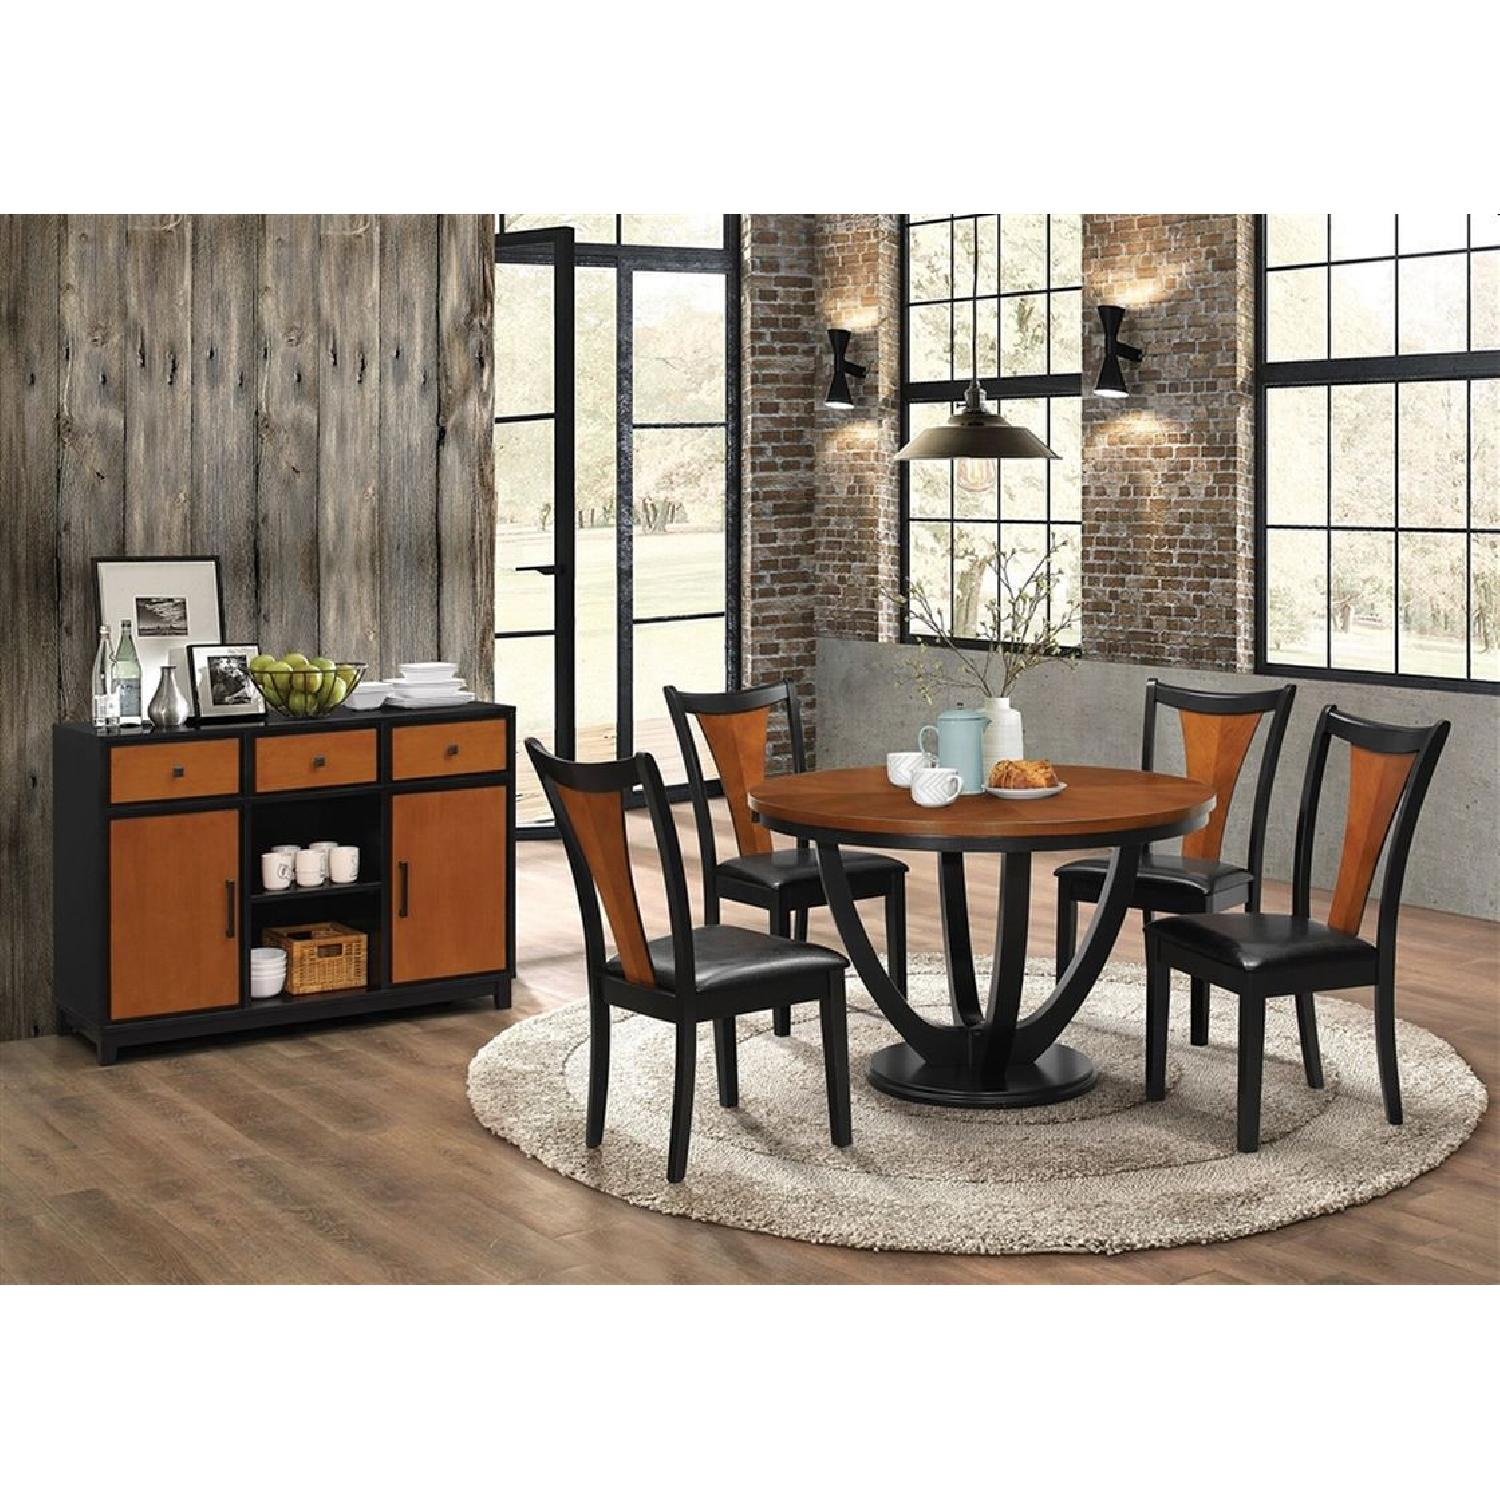 Modern Round Table in Amber w/ Black Base - image-2